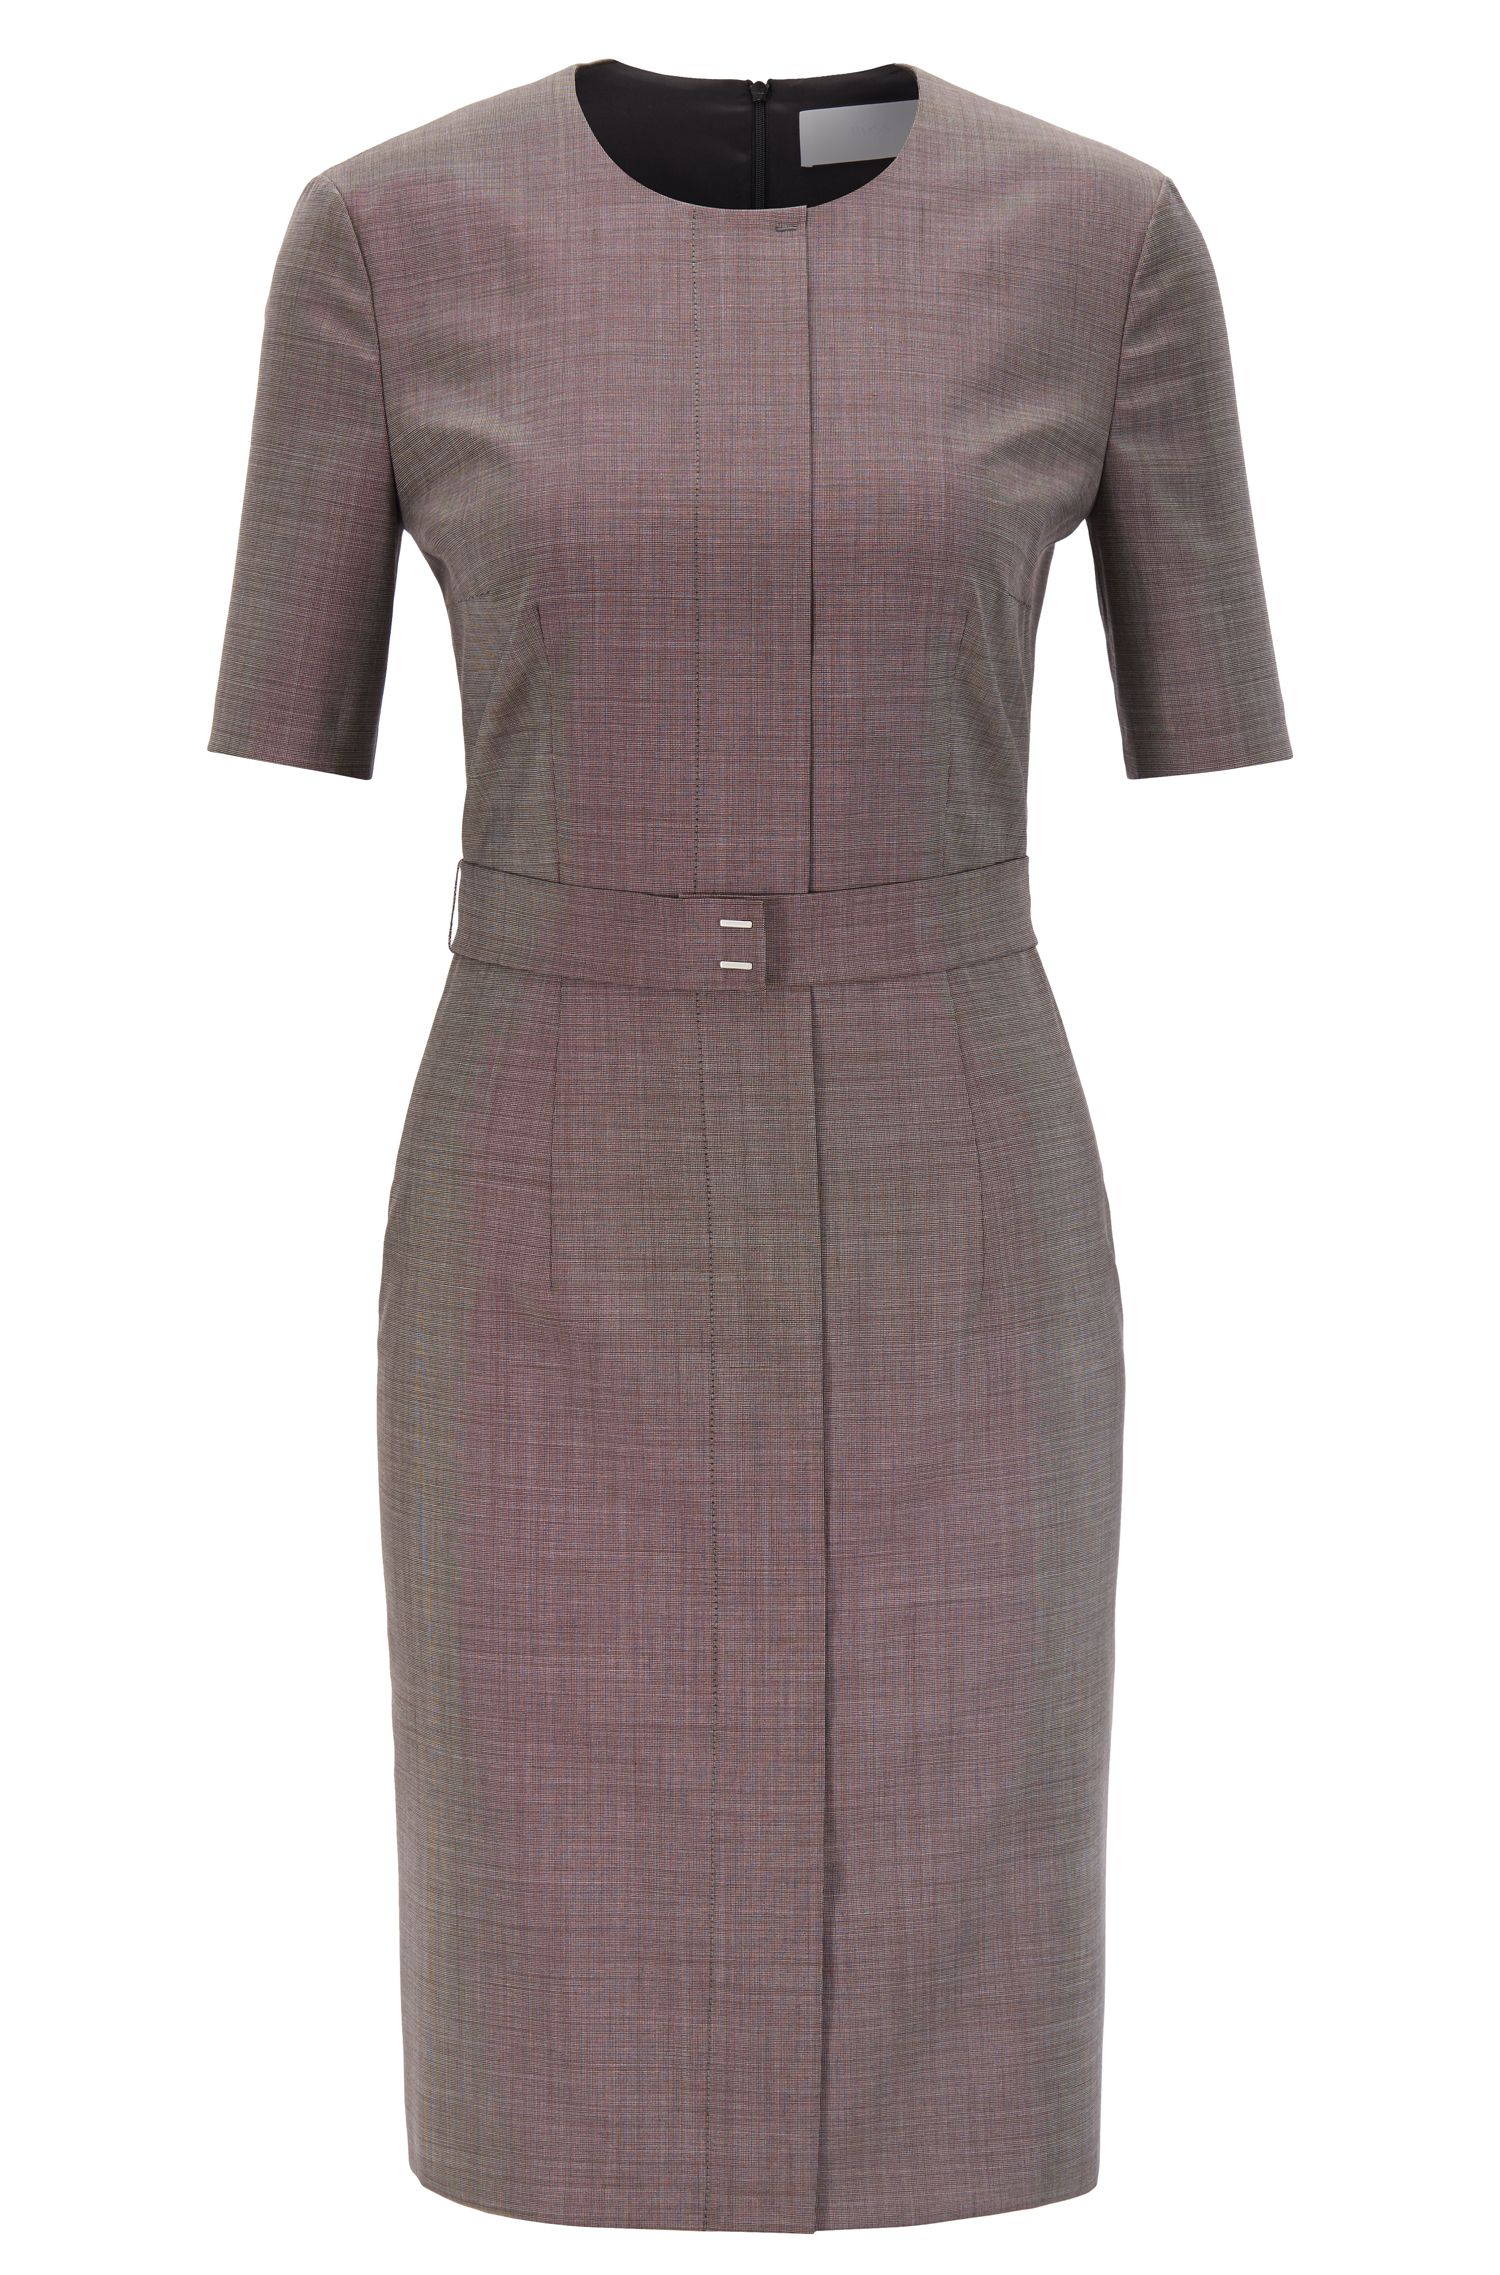 Shift dress in Italian virgin wool with belt detail, Patterned